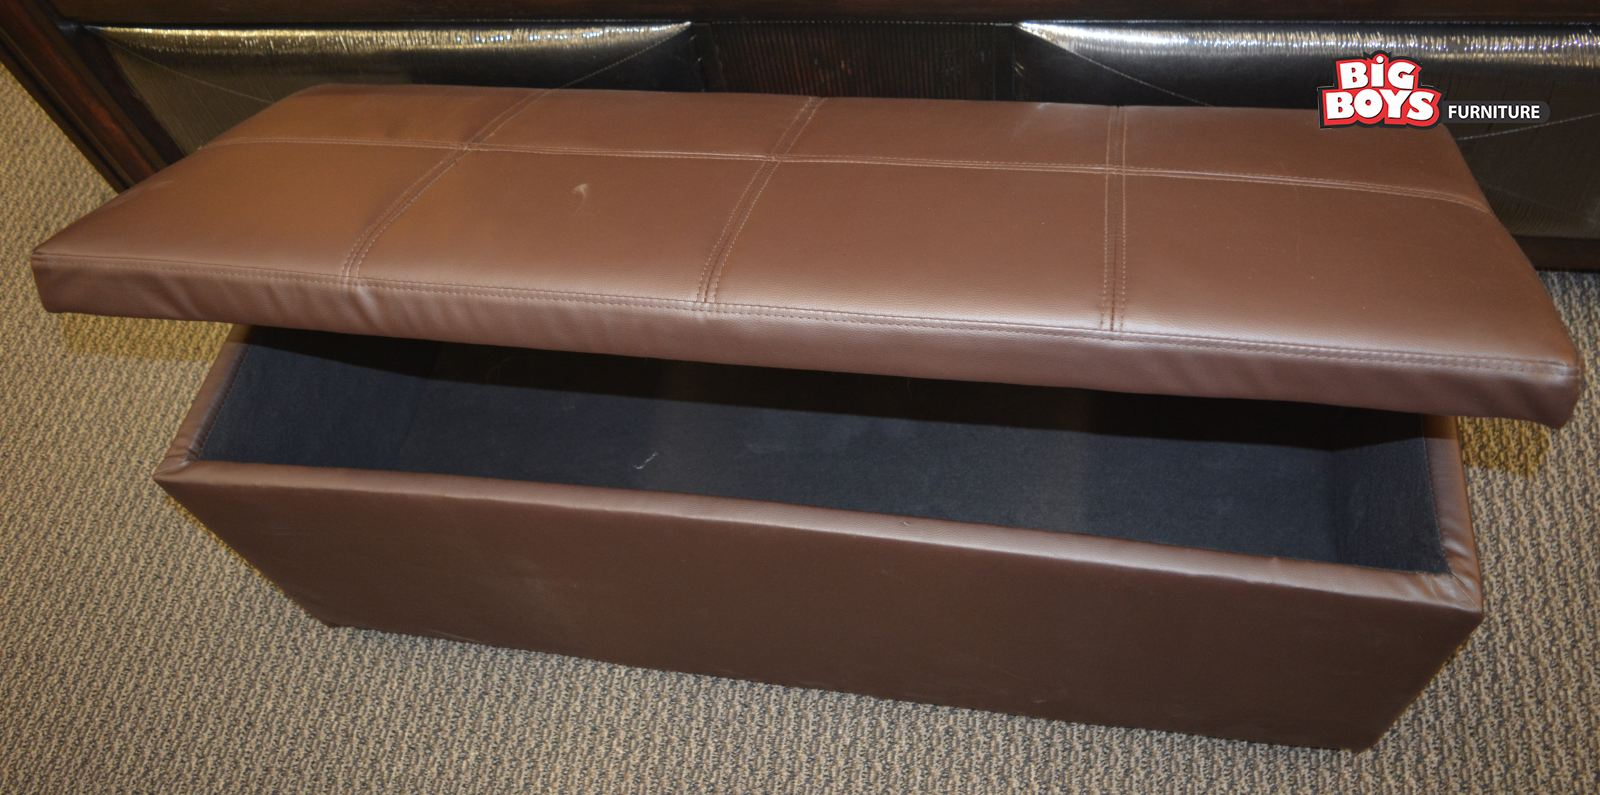 Stylish Ottoman and Bench with storage box available at Big Boys Furniture Delta/Surrey